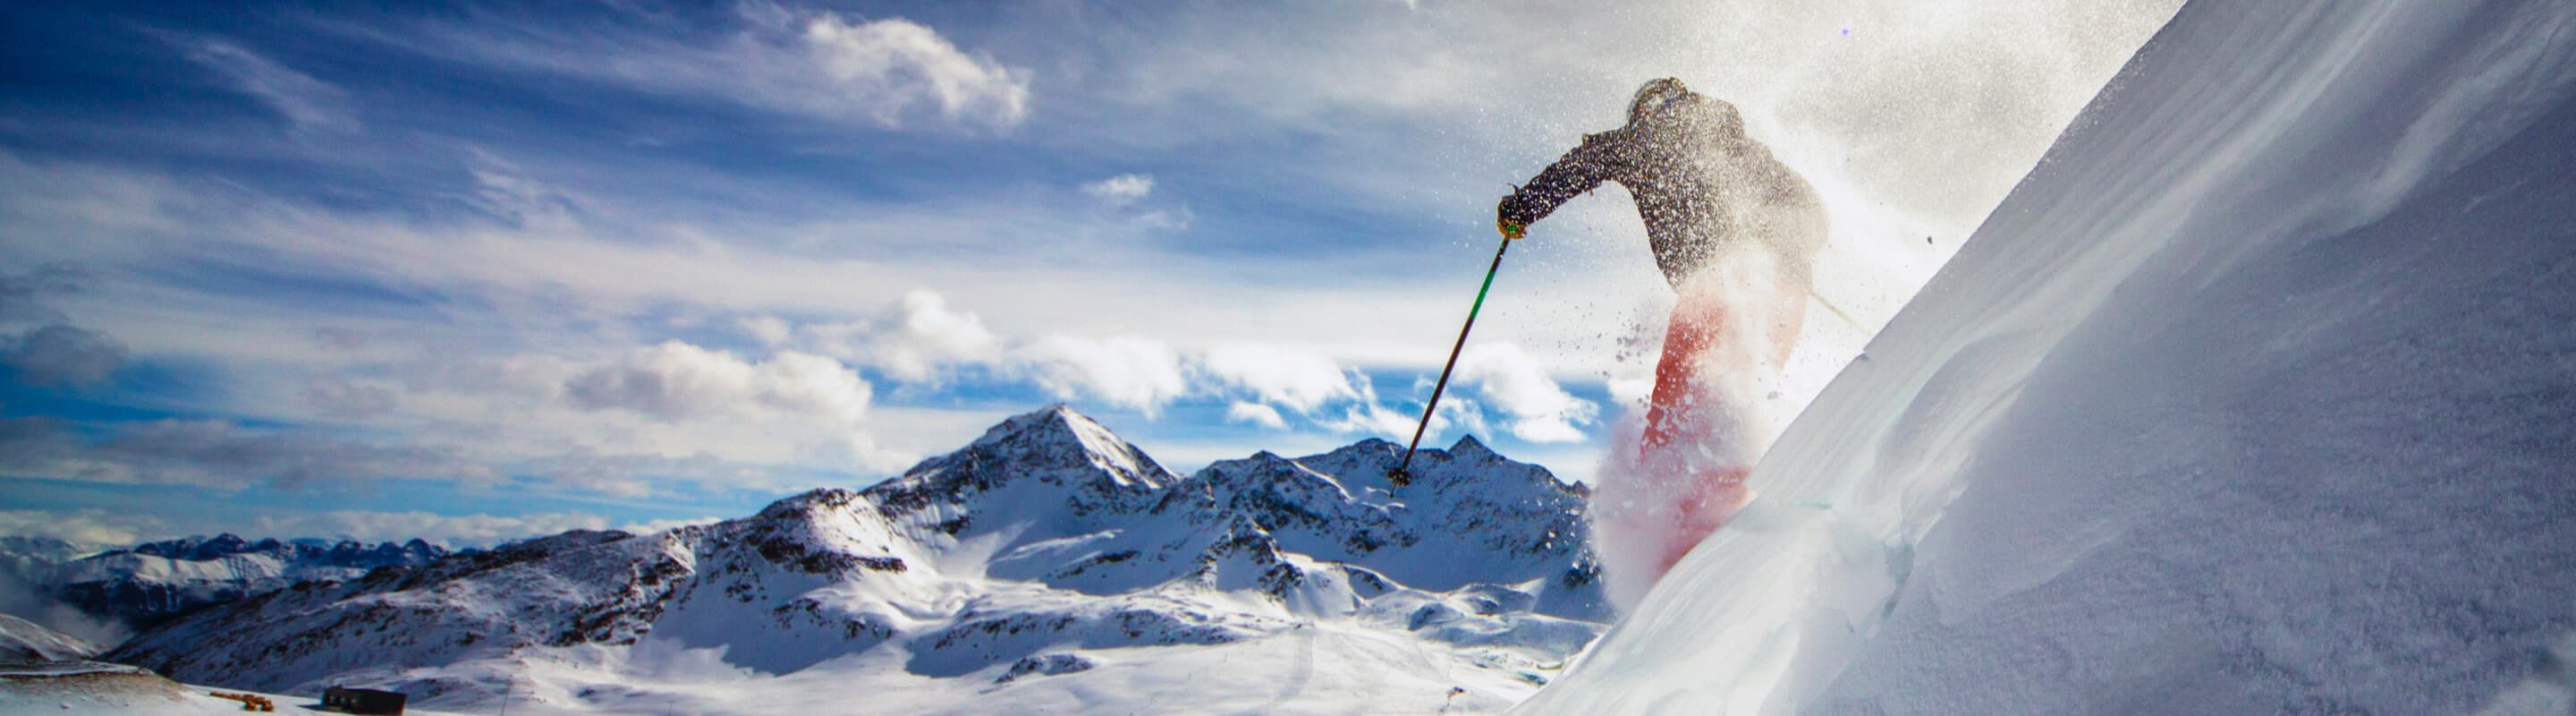 A skier  coming down a mountain